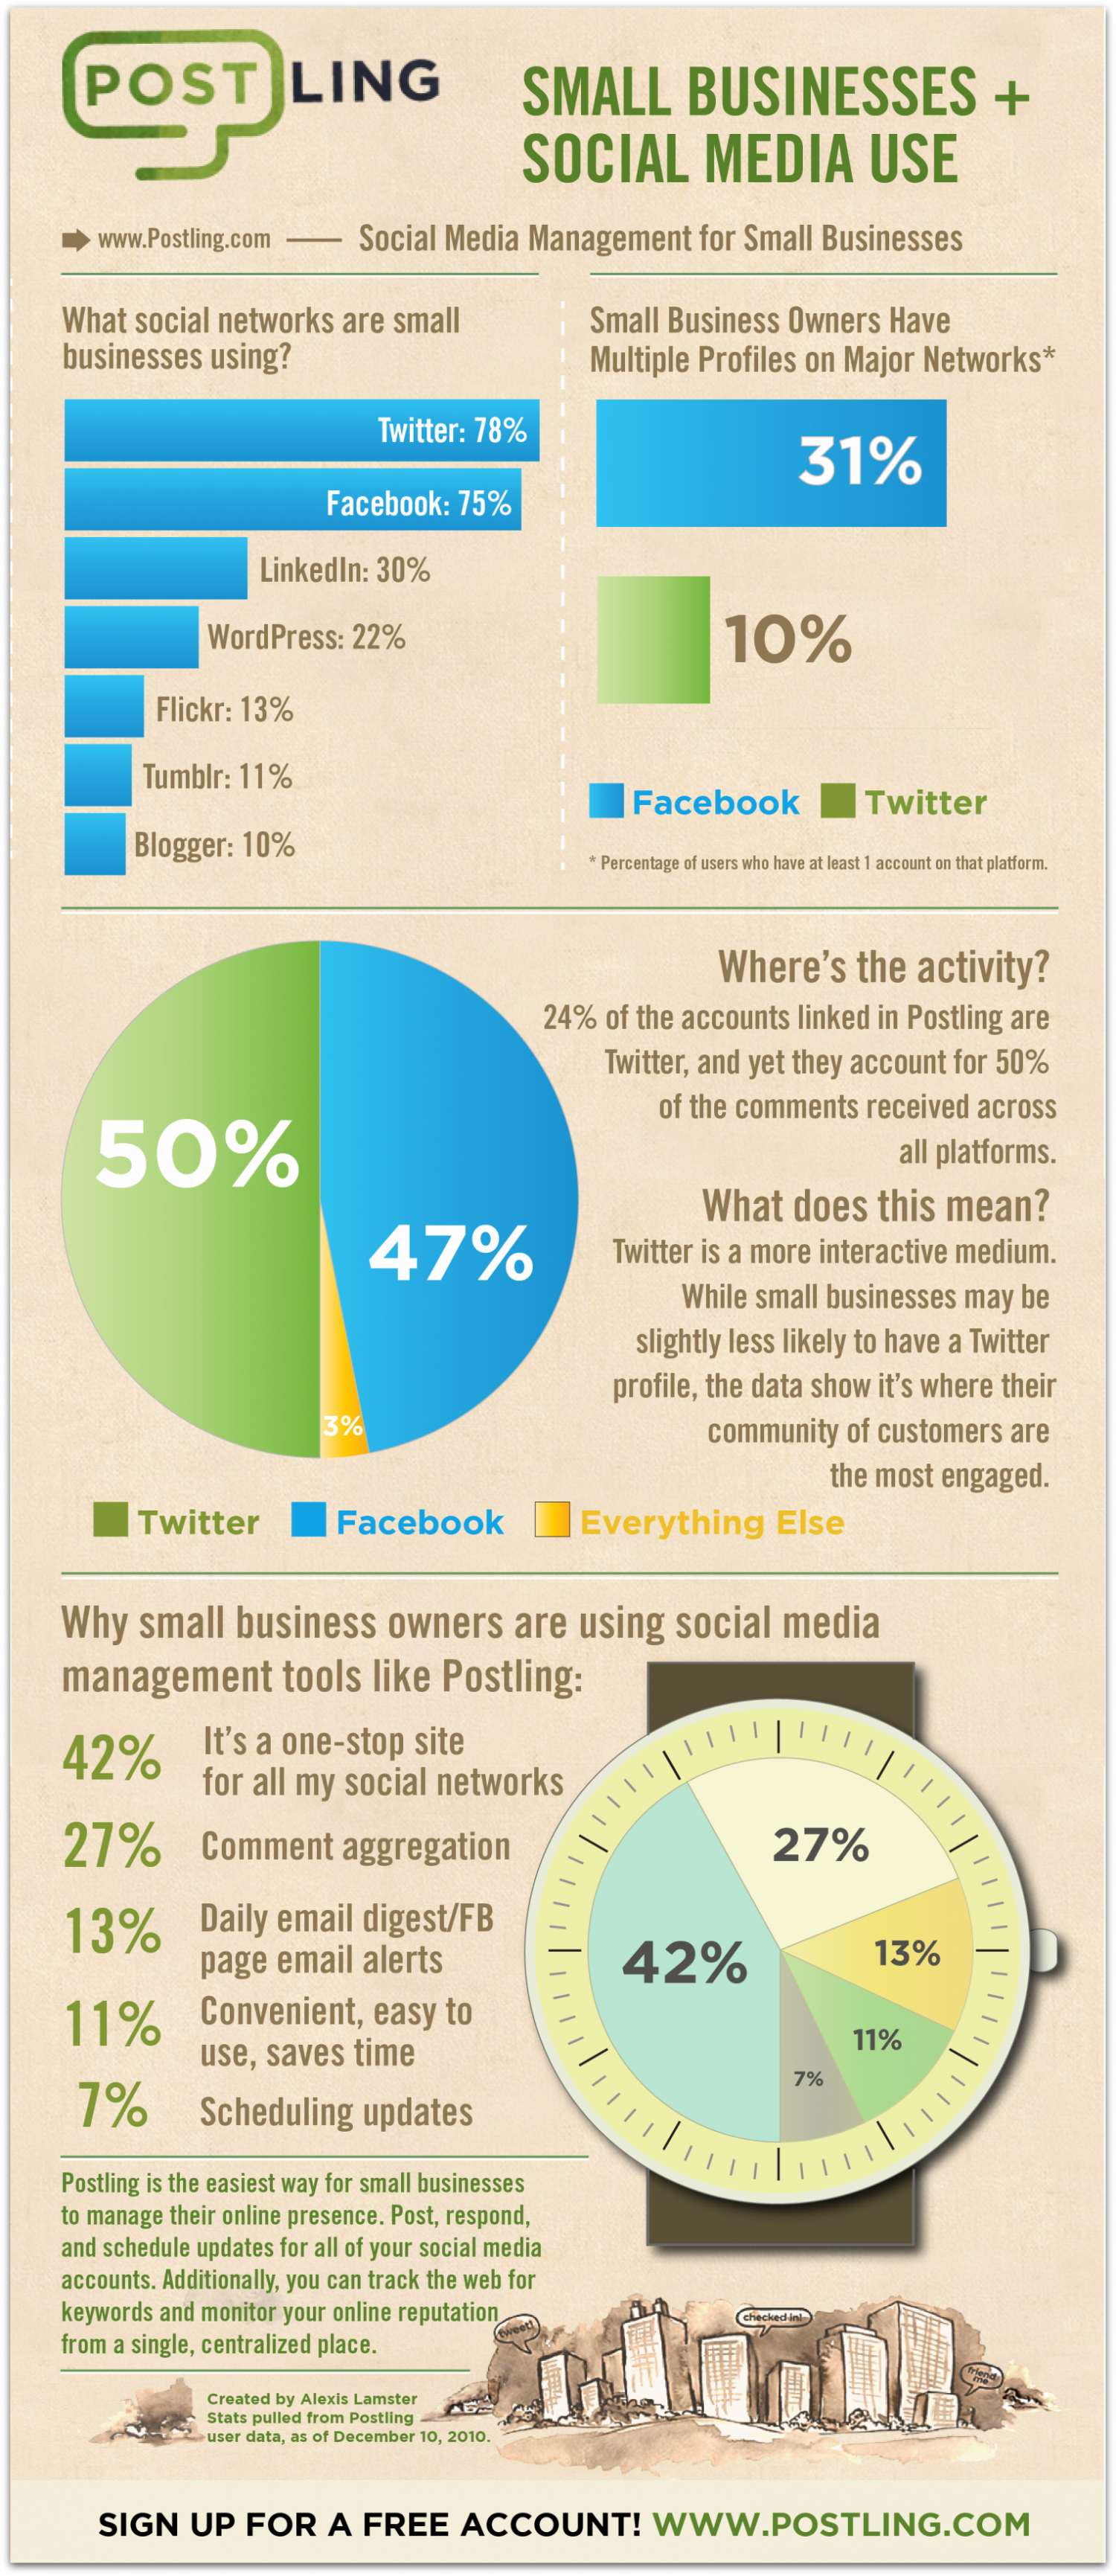 Small Business Social Media Usage [INFOGRAPHIC]   Tech Savvy Agent Infographic